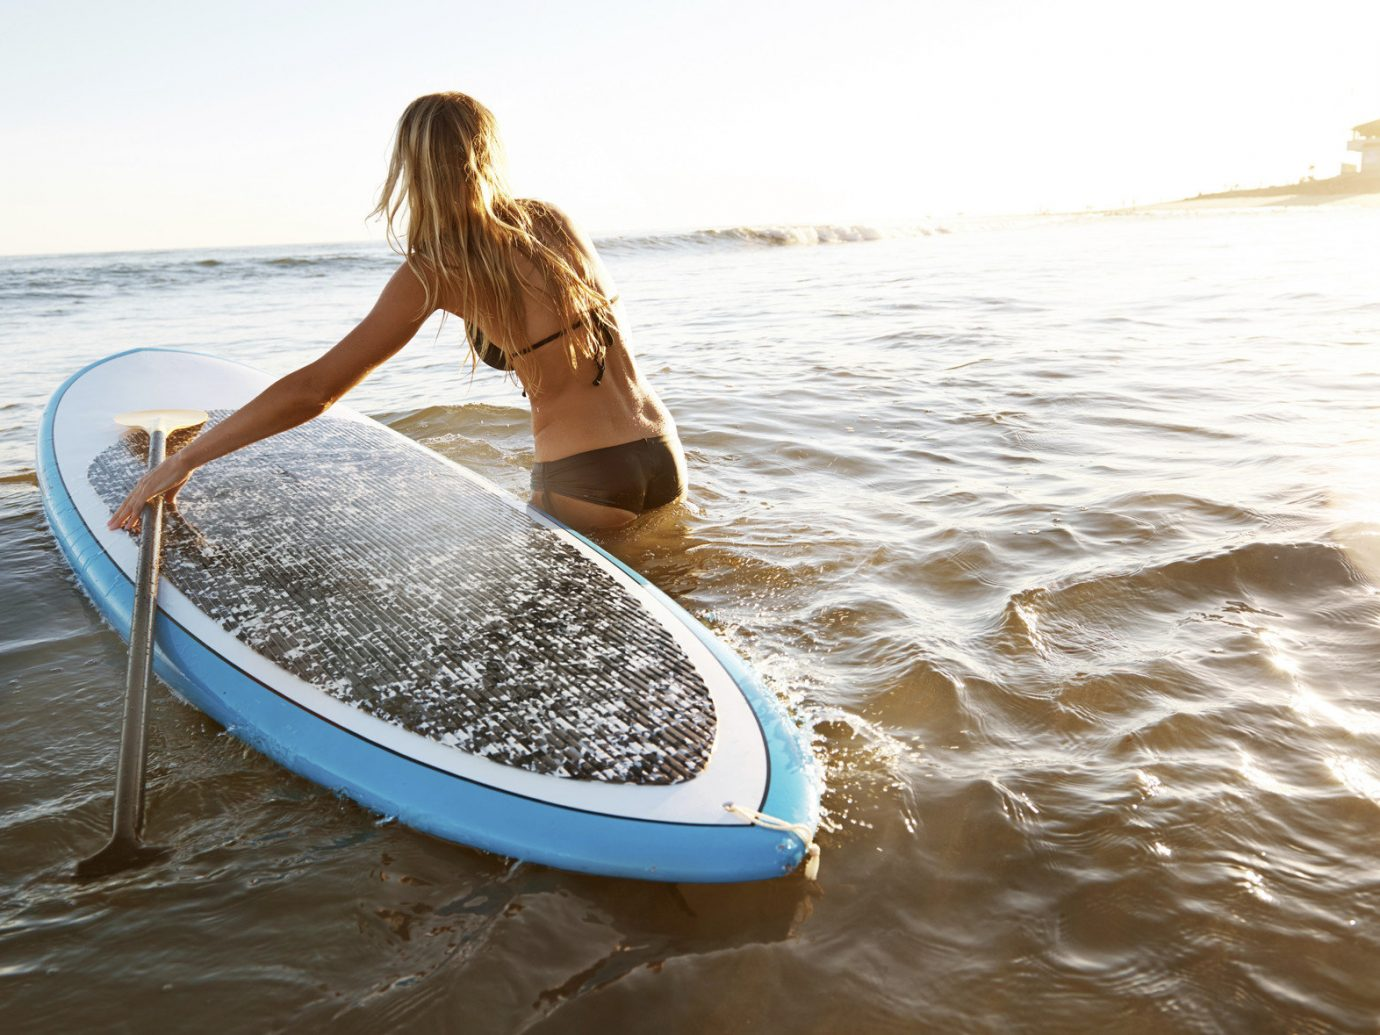 Trip Ideas water outdoor sky shore Sea wave Ocean wind wave vacation surfboard Beach Nature sand surfing equipment and supplies swimming pool paddle